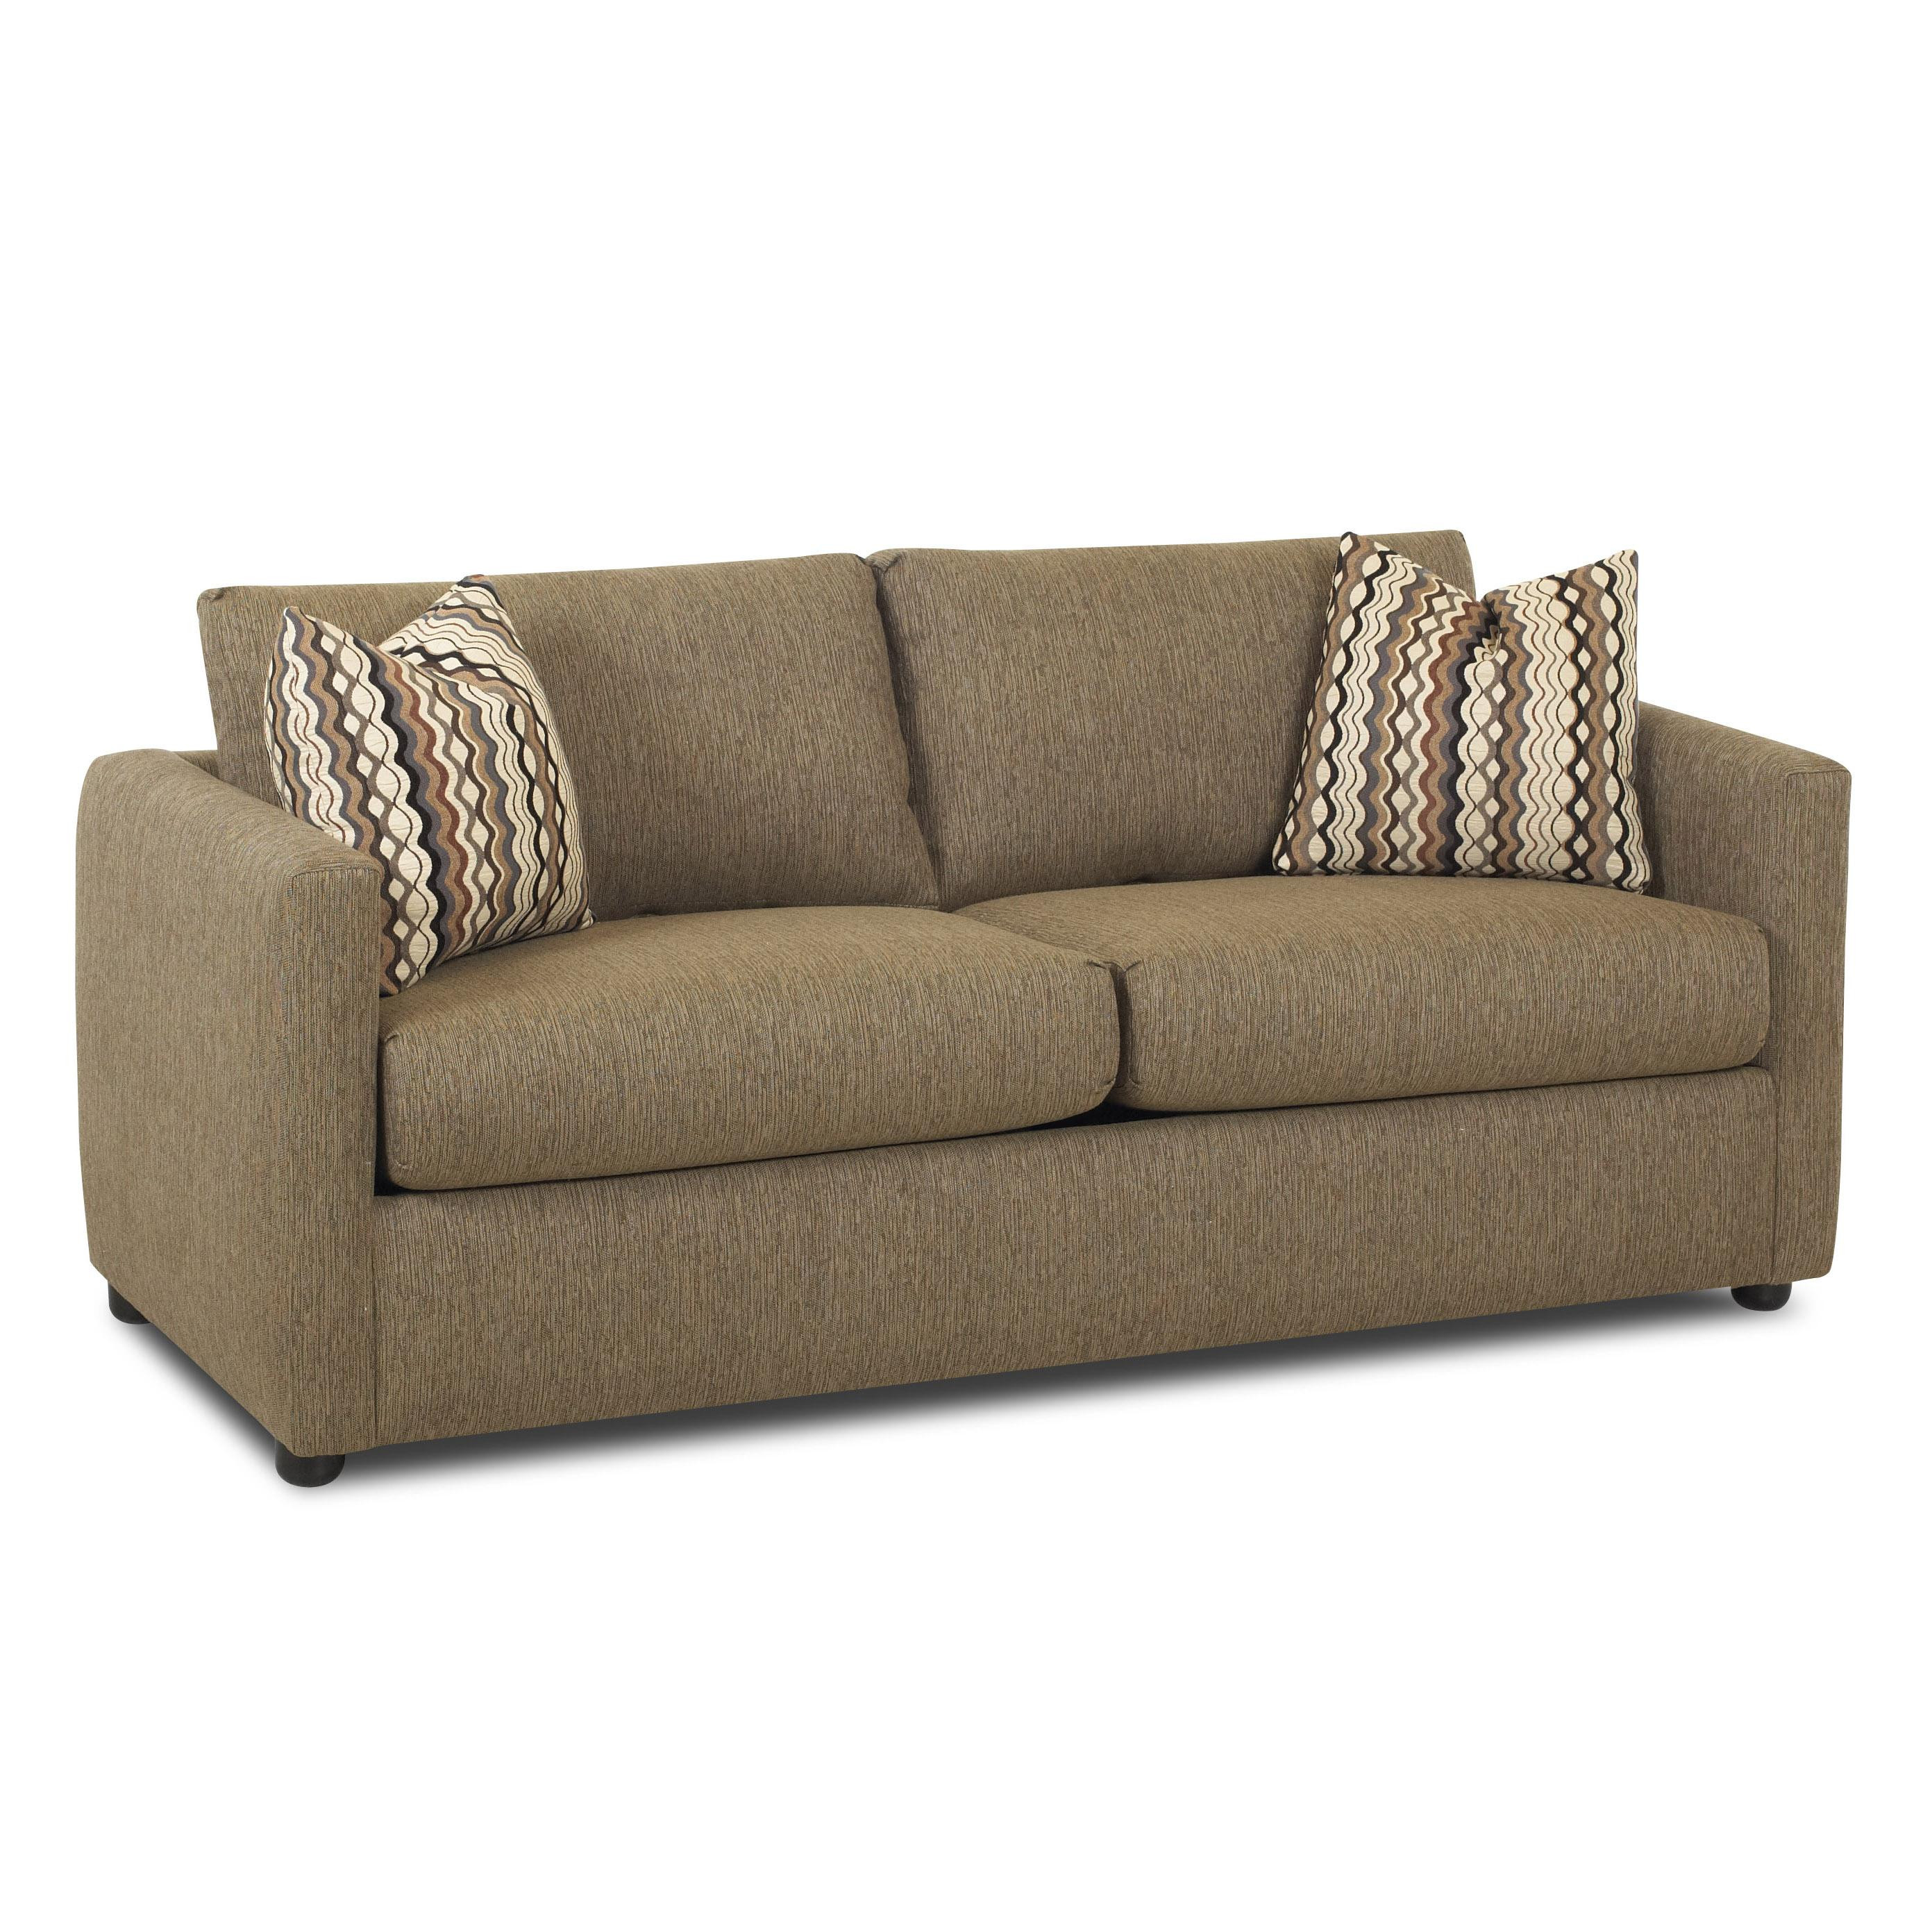 Best ideas about Sectional Sleeper Sofa Queen . Save or Pin Jacobs Casual Queen Sleeper Sofa by Klaussner Now.